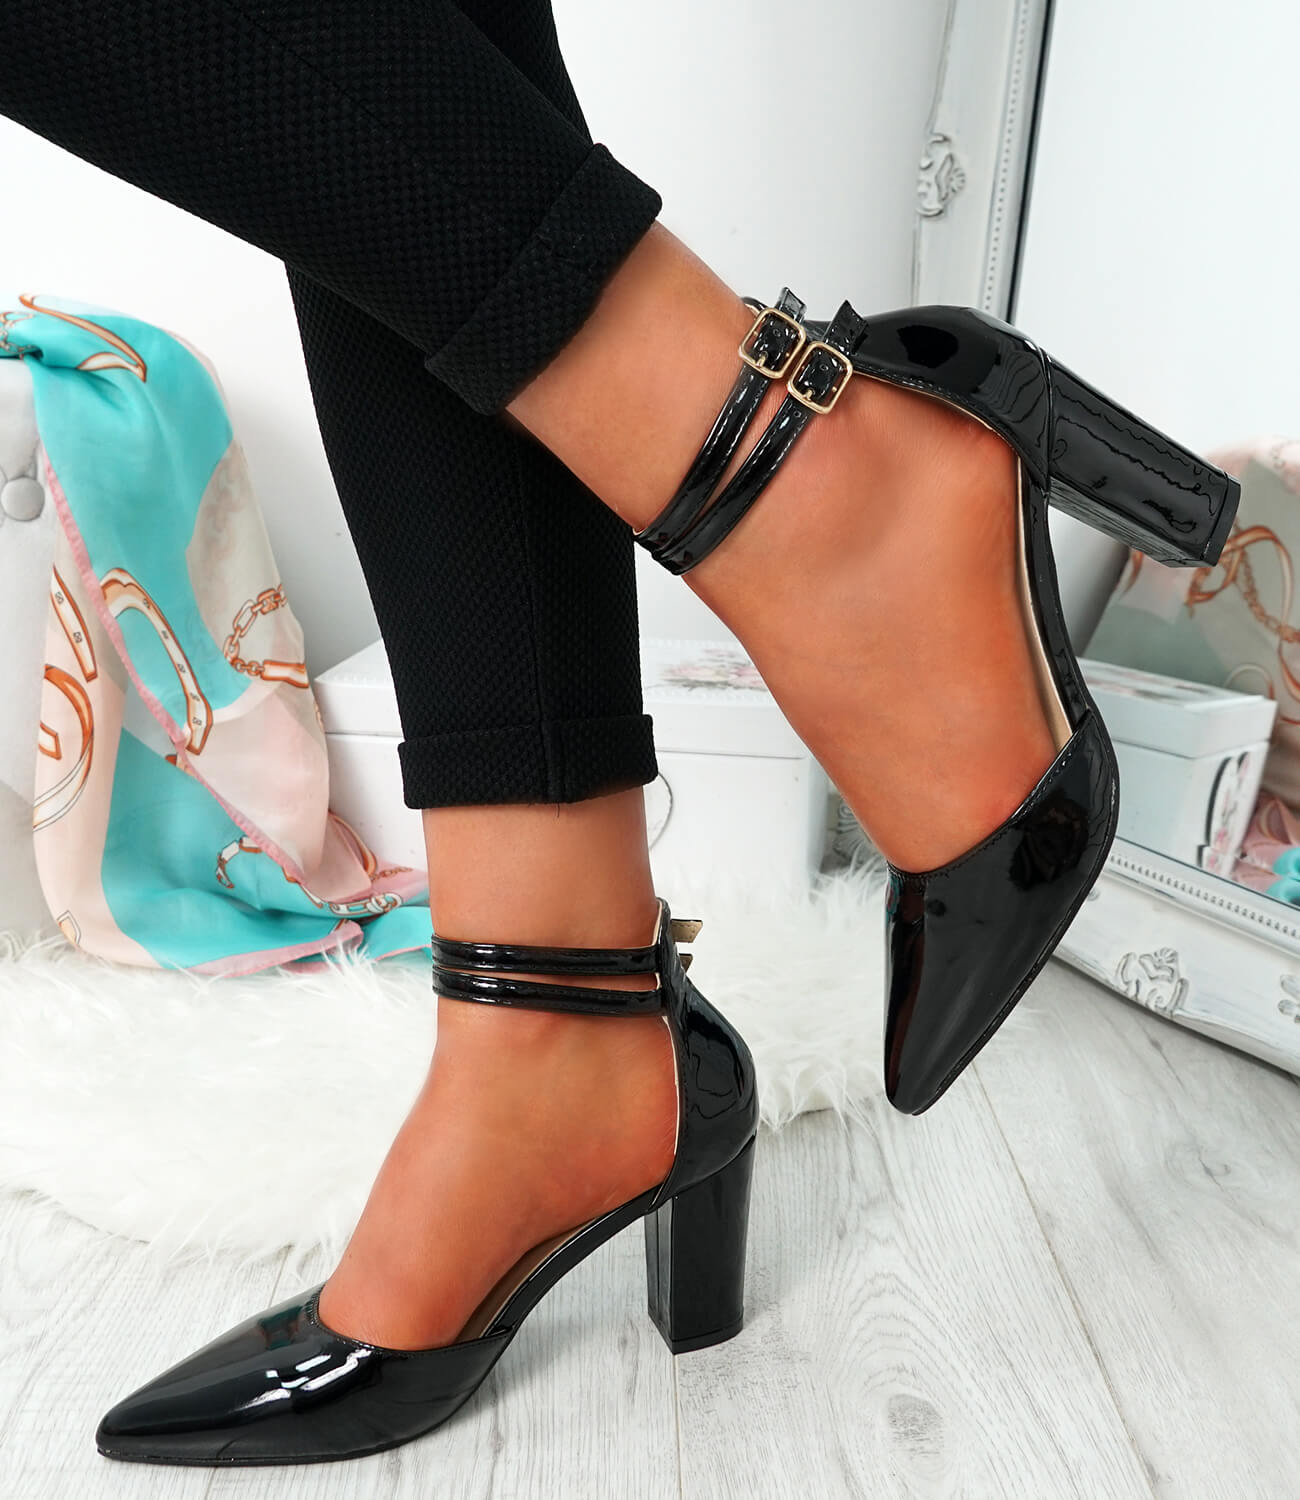 WOMENS-LADIES-ANKLE-DOUBLE-STRAP-HIGH-BLOCK-HEEL-POINTED-TOE-PARTY-SHOES-SIZE thumbnail 7